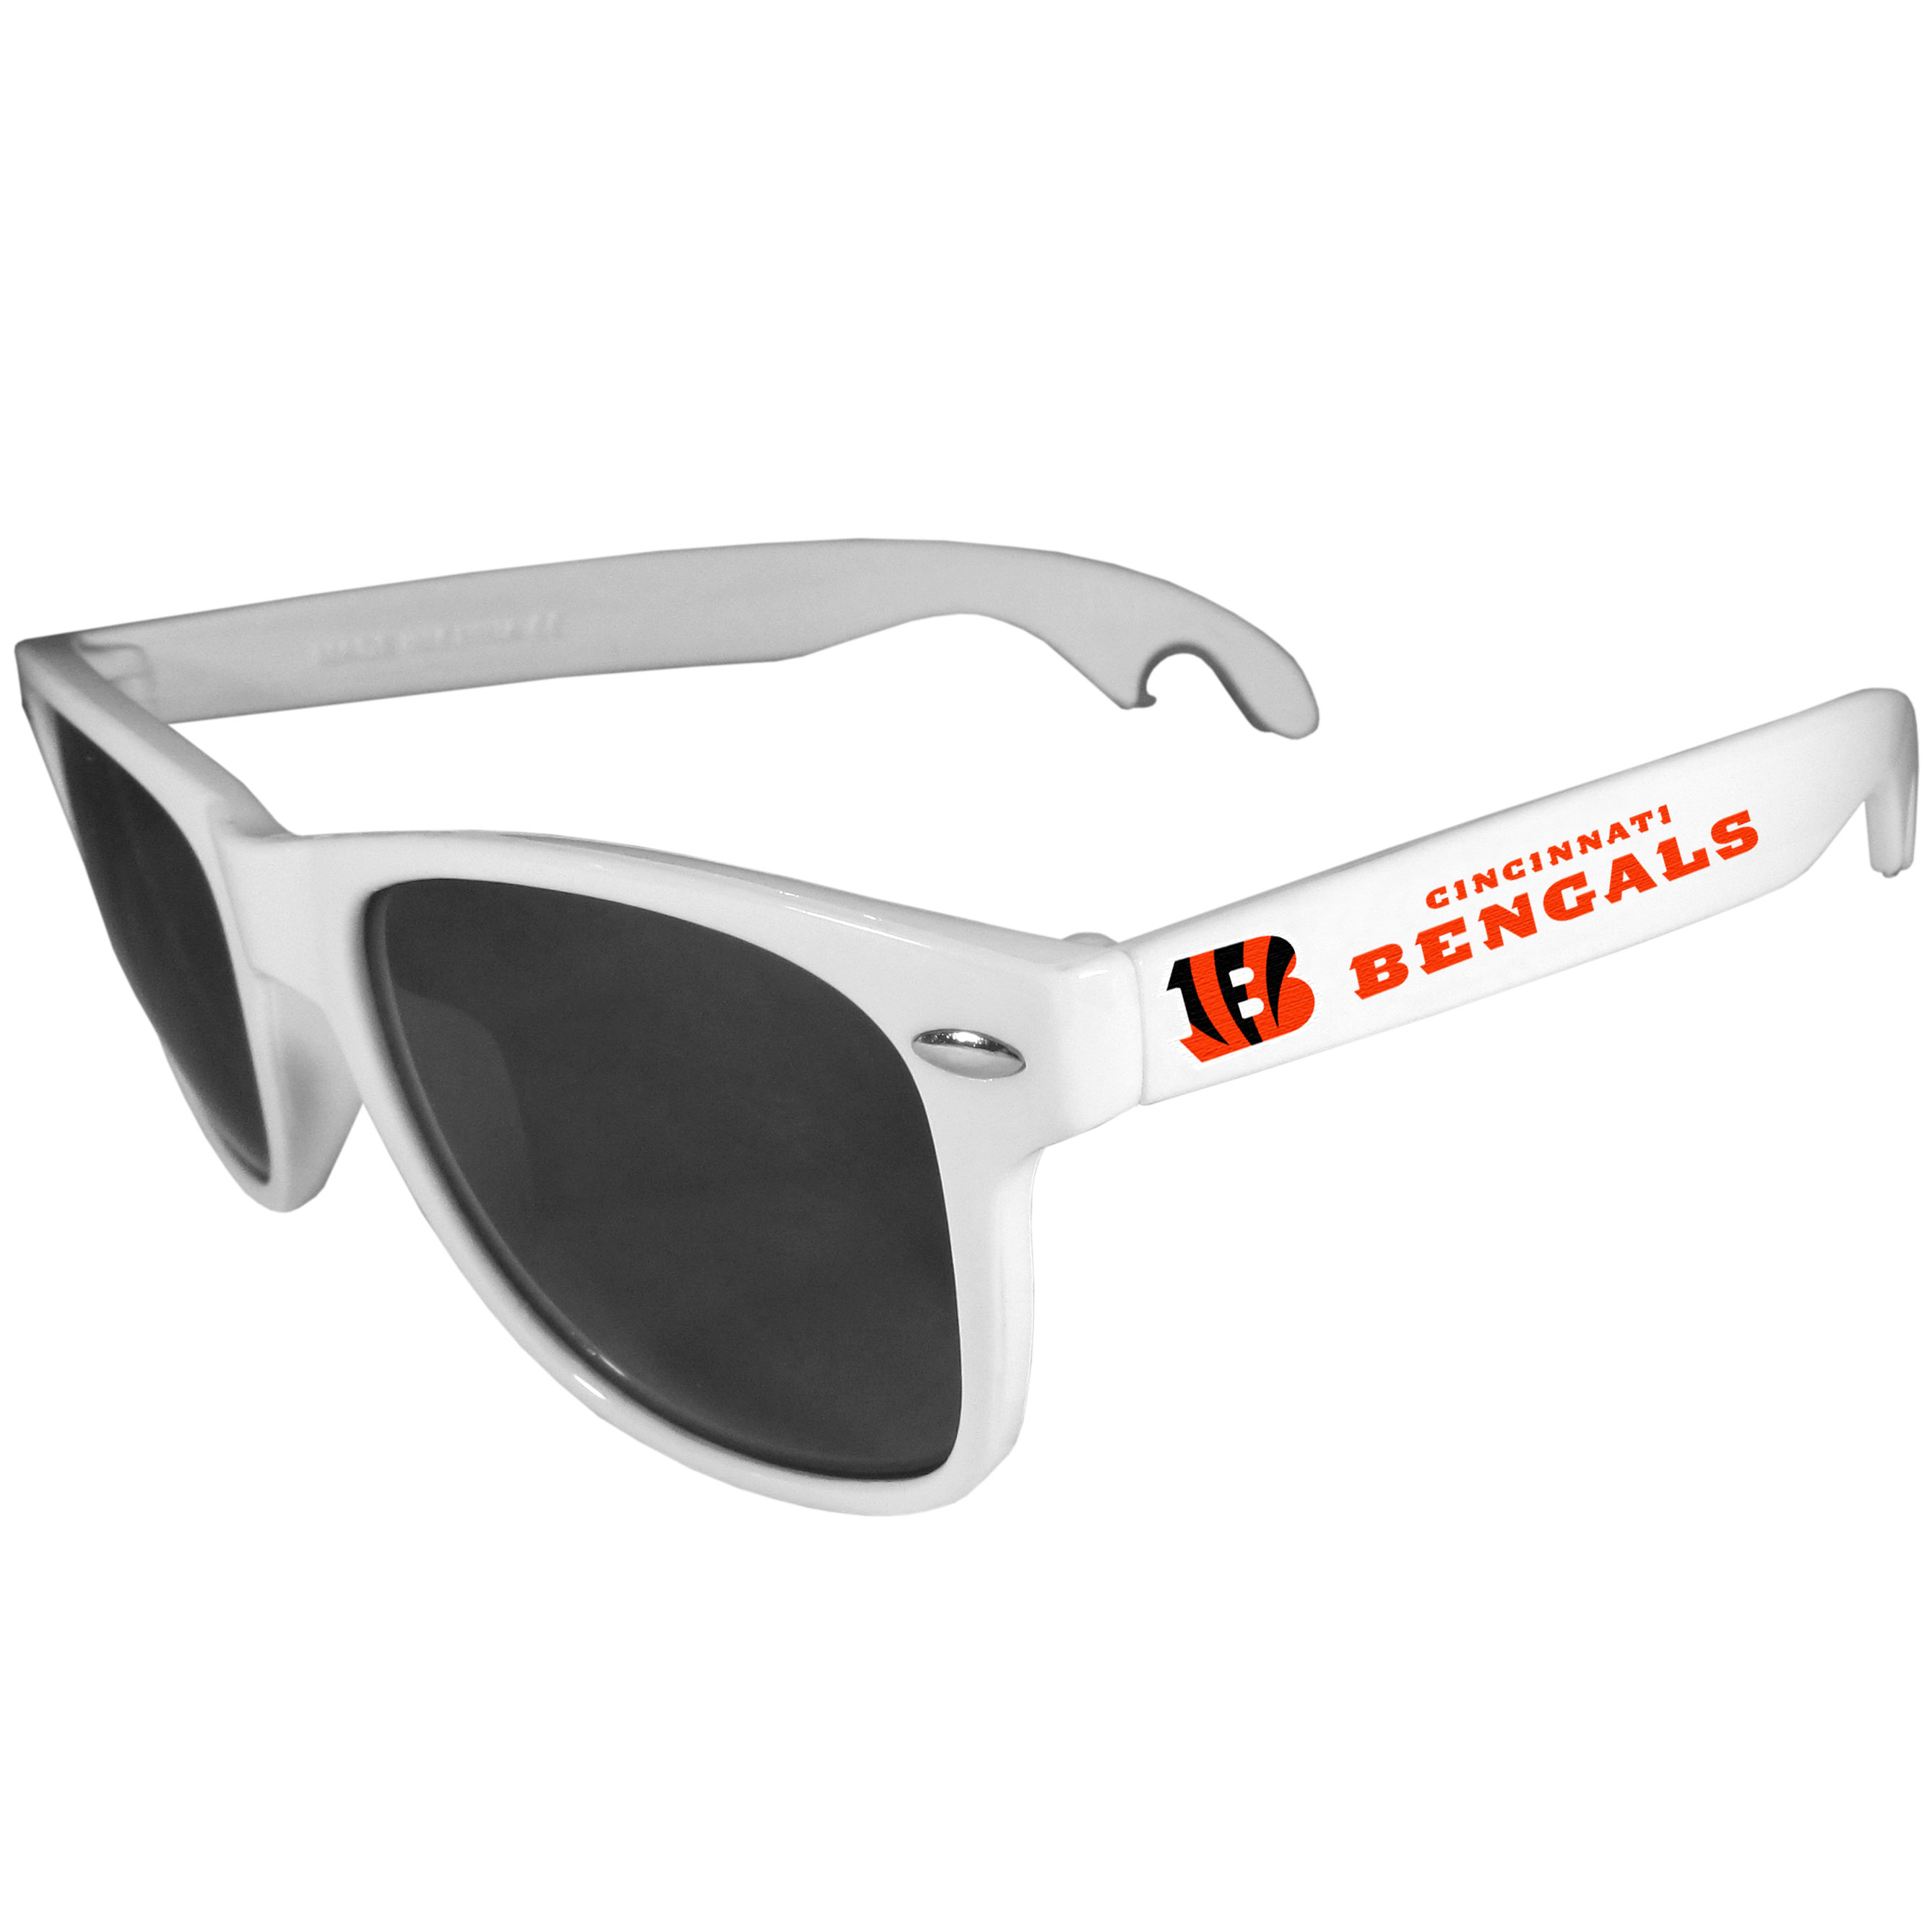 Cincinnati Bengals Beachfarer Bottle Opener Sunglasses, White - Seriously, these sunglasses open bottles! Keep the party going with these amazing Cincinnati Bengals bottle opener sunglasses. The stylish retro frames feature team designs on the arms and functional bottle openers on the end of the arms. Whether you are at the beach or having a backyard BBQ on game day, these shades will keep your eyes protected with 100% UVA/UVB protection and keep you hydrated with the handy bottle opener arms.